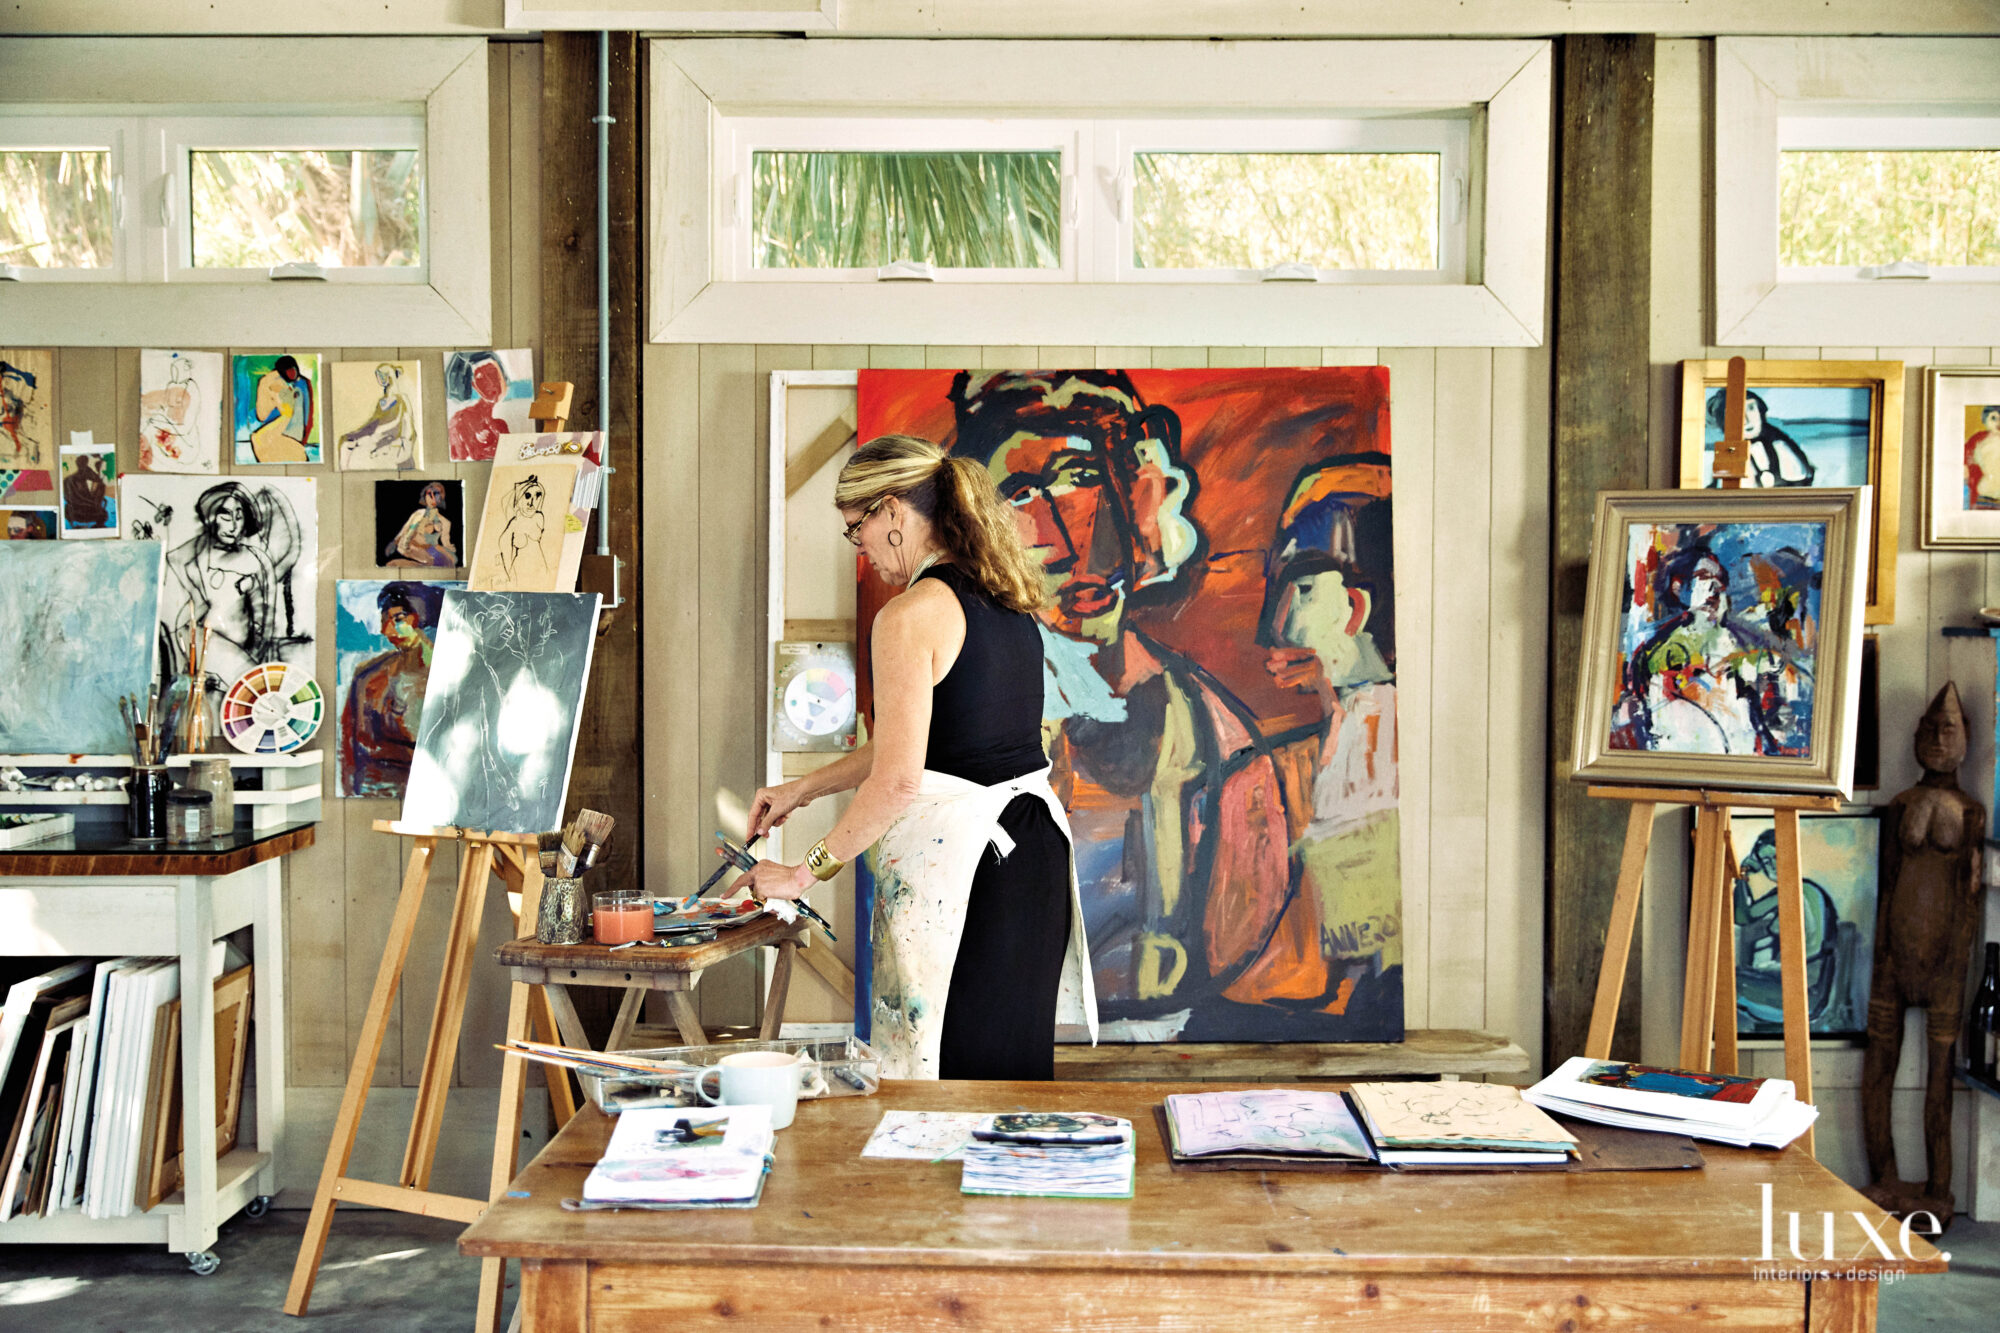 Woman standing and painting, easel with artworks to left and table in foreground